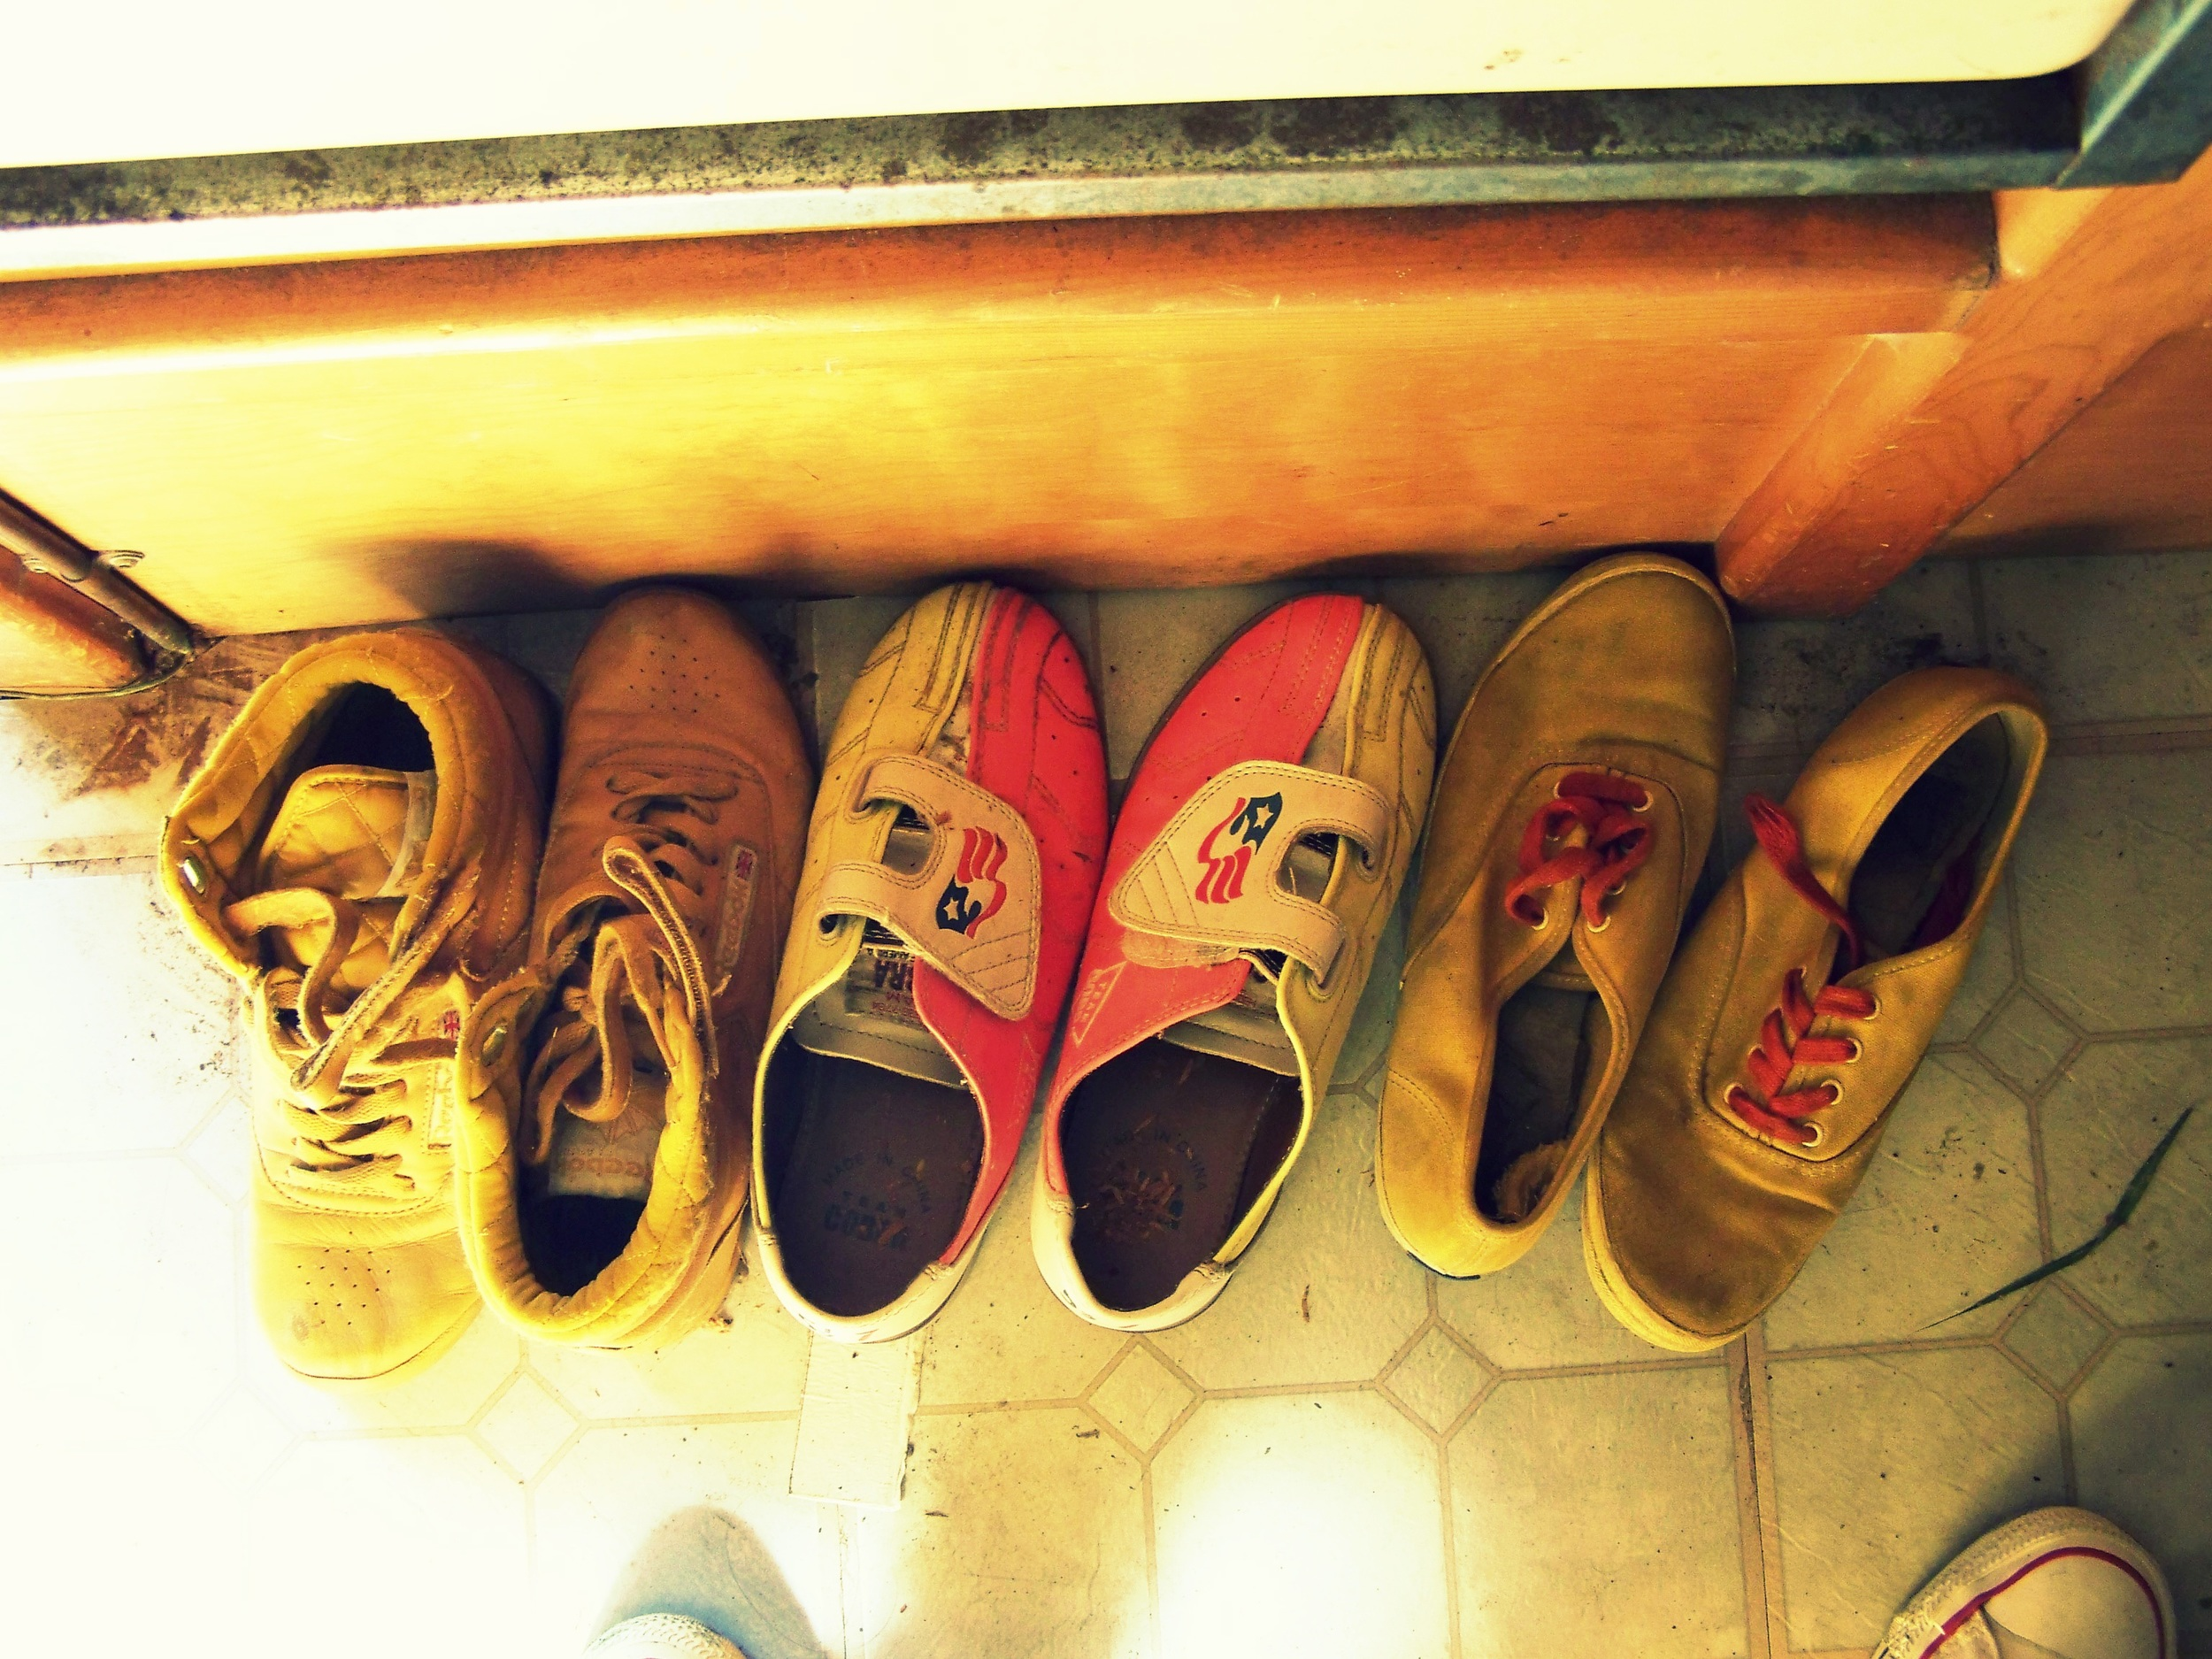 Some of the vintage shoes that I found in the Avalon when she was delivered to me - in my size none the less!